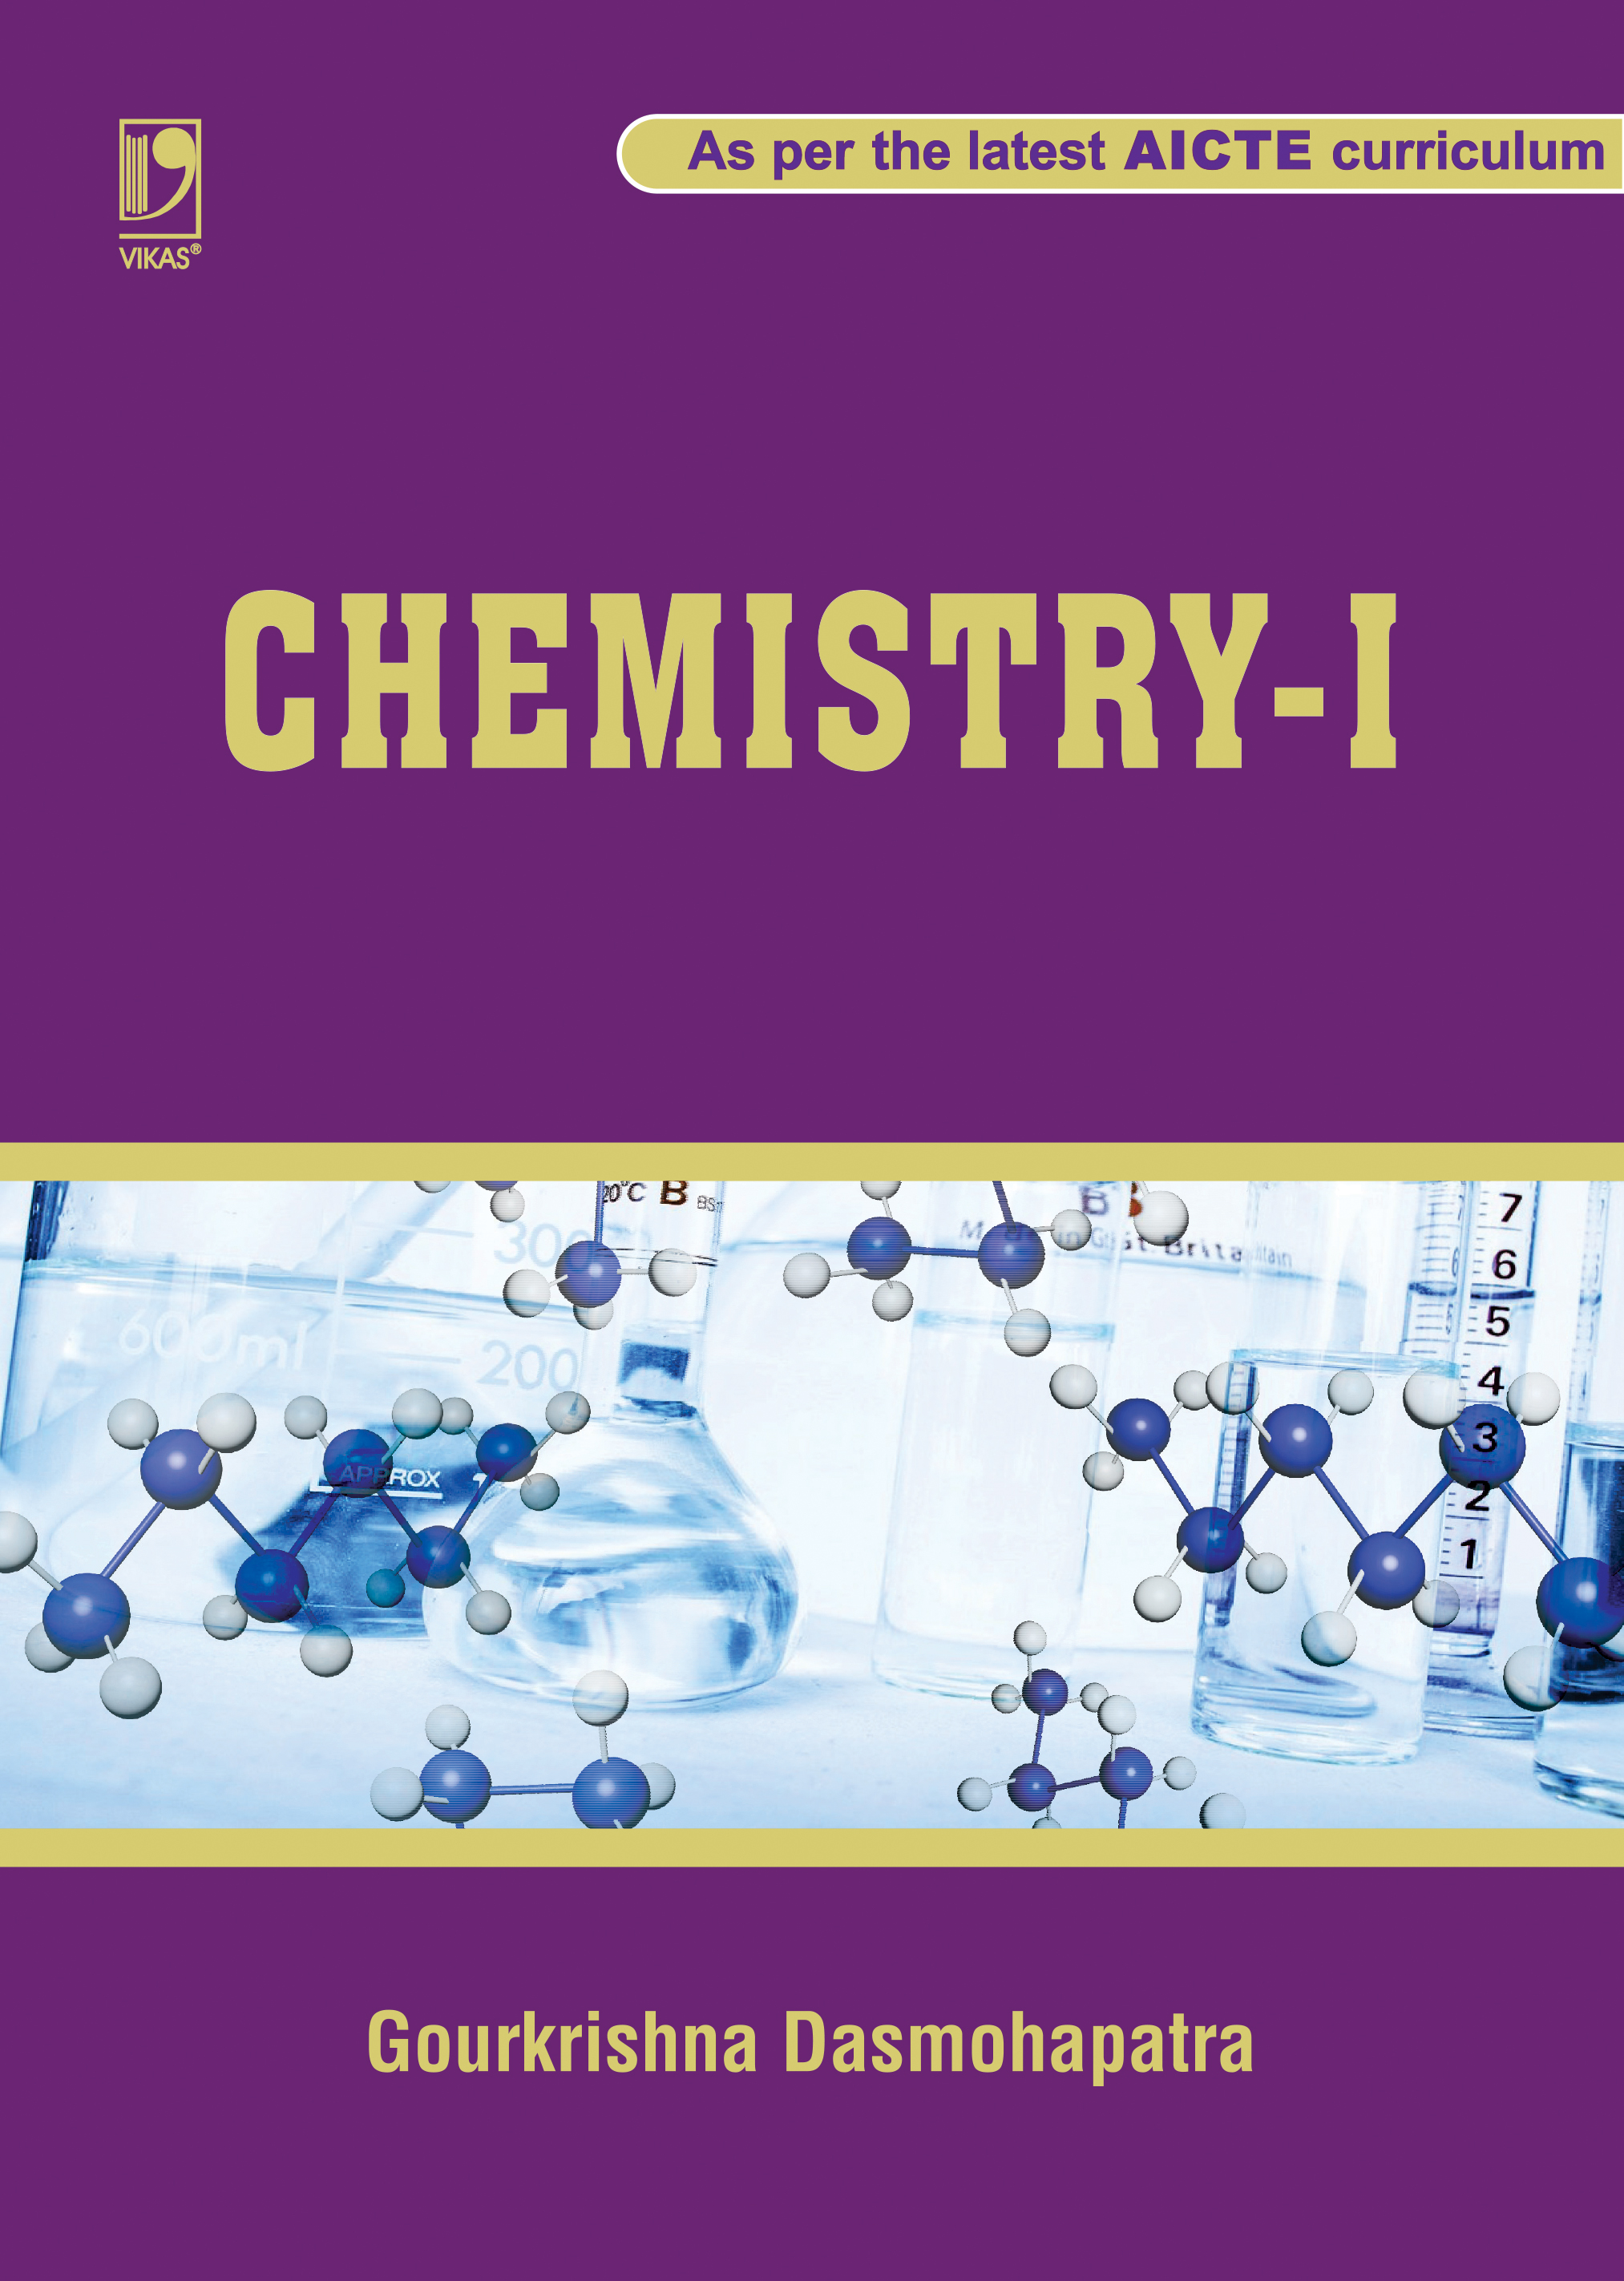 Chemistry-I (As per the latest AICTE curriculum) by  Gourkrishna Dasmohapatra